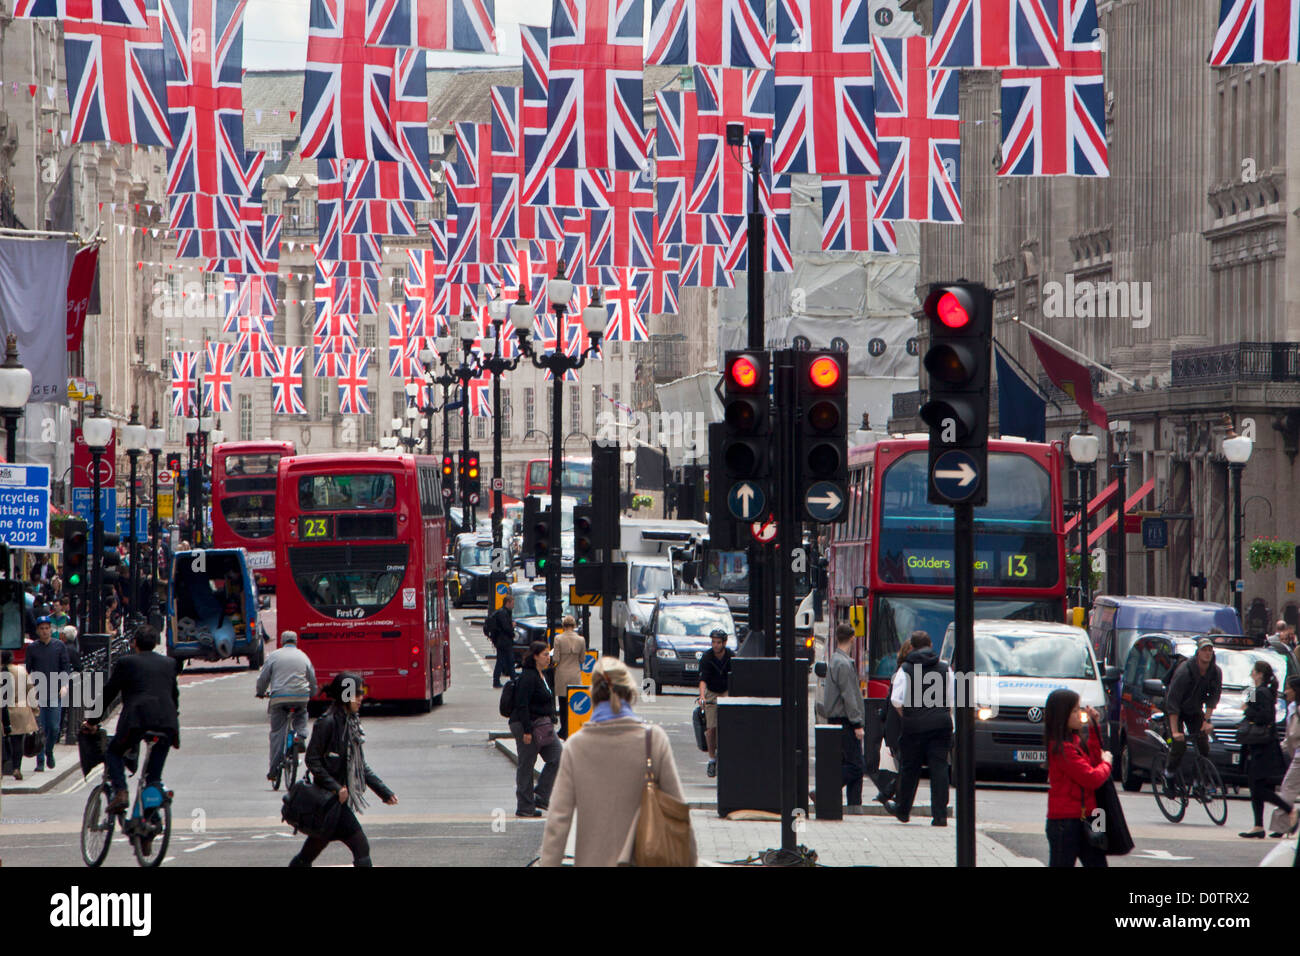 UK, Great Britain, Europe, travel, holiday, England, London, City, Oxford Street, buses, flags, red, traffic - Stock Image